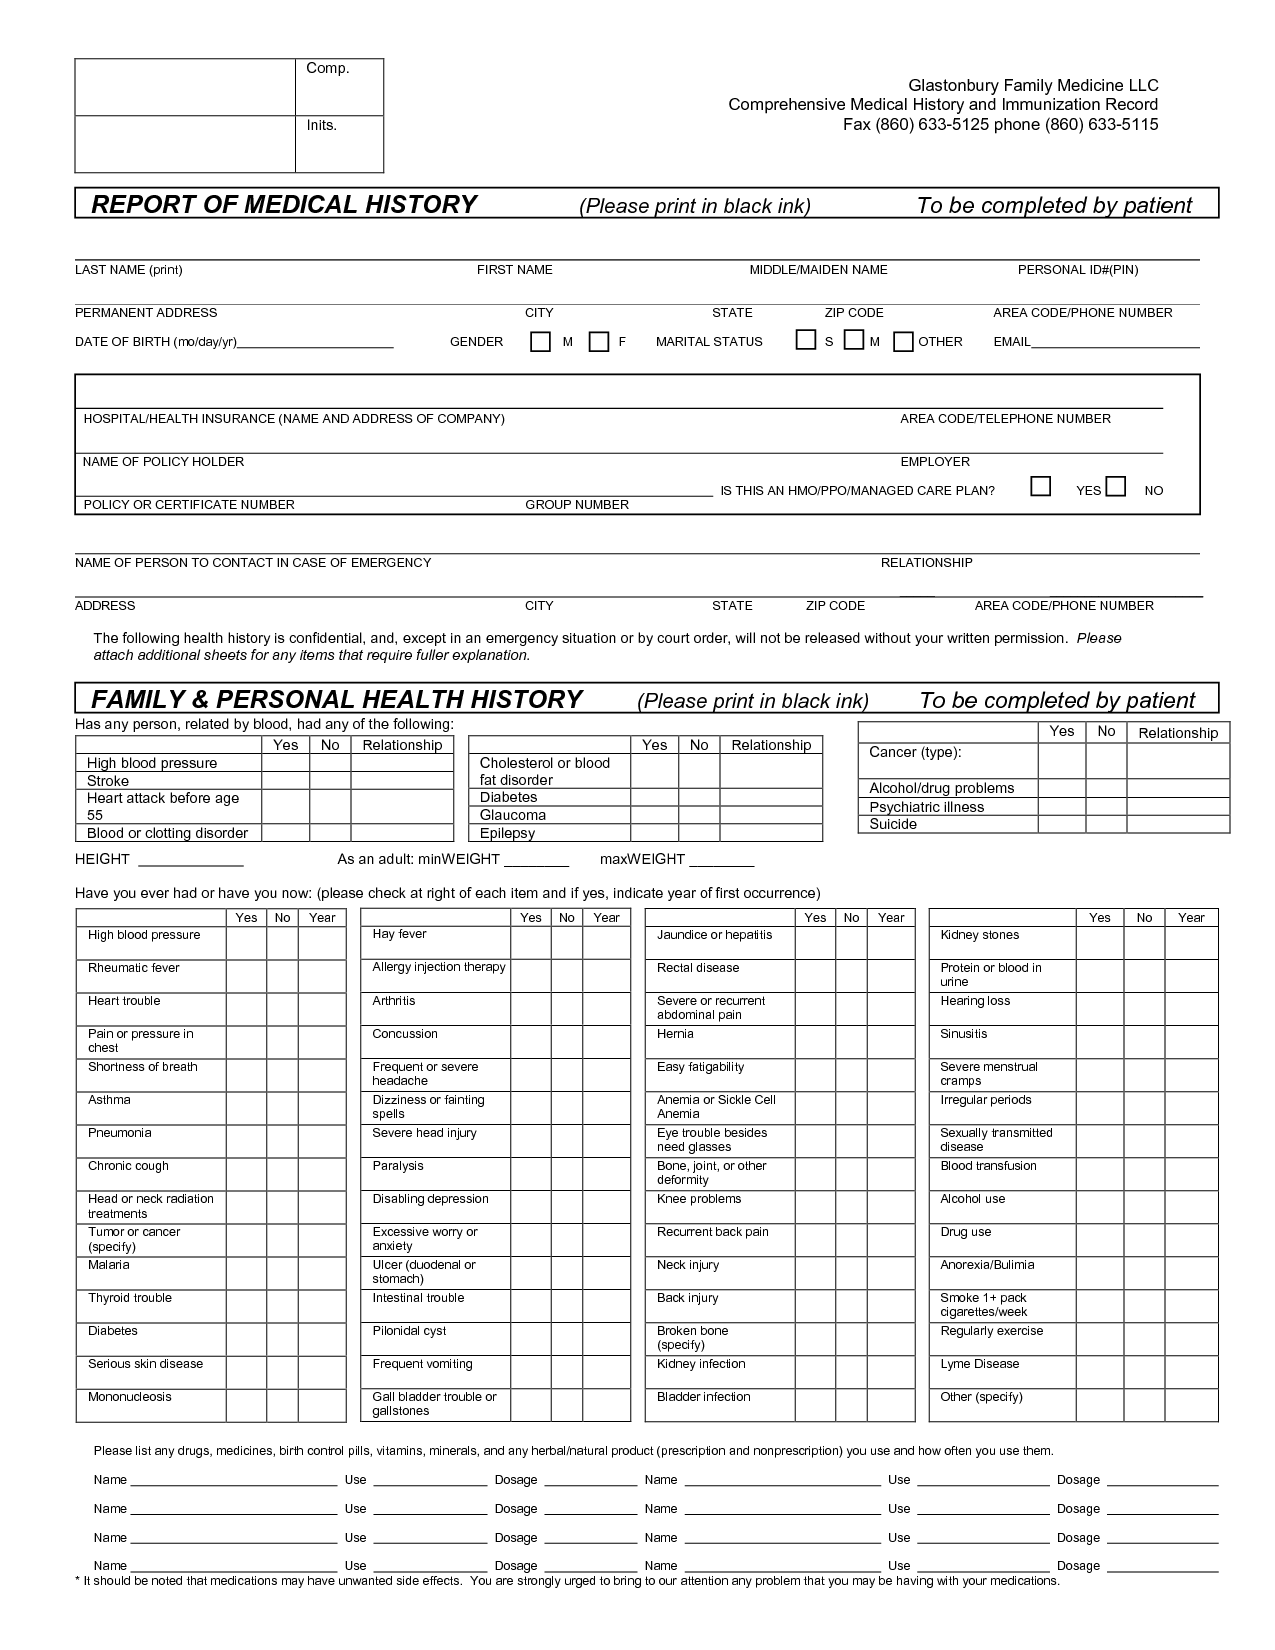 Report Of Medical History Family Personal Health History